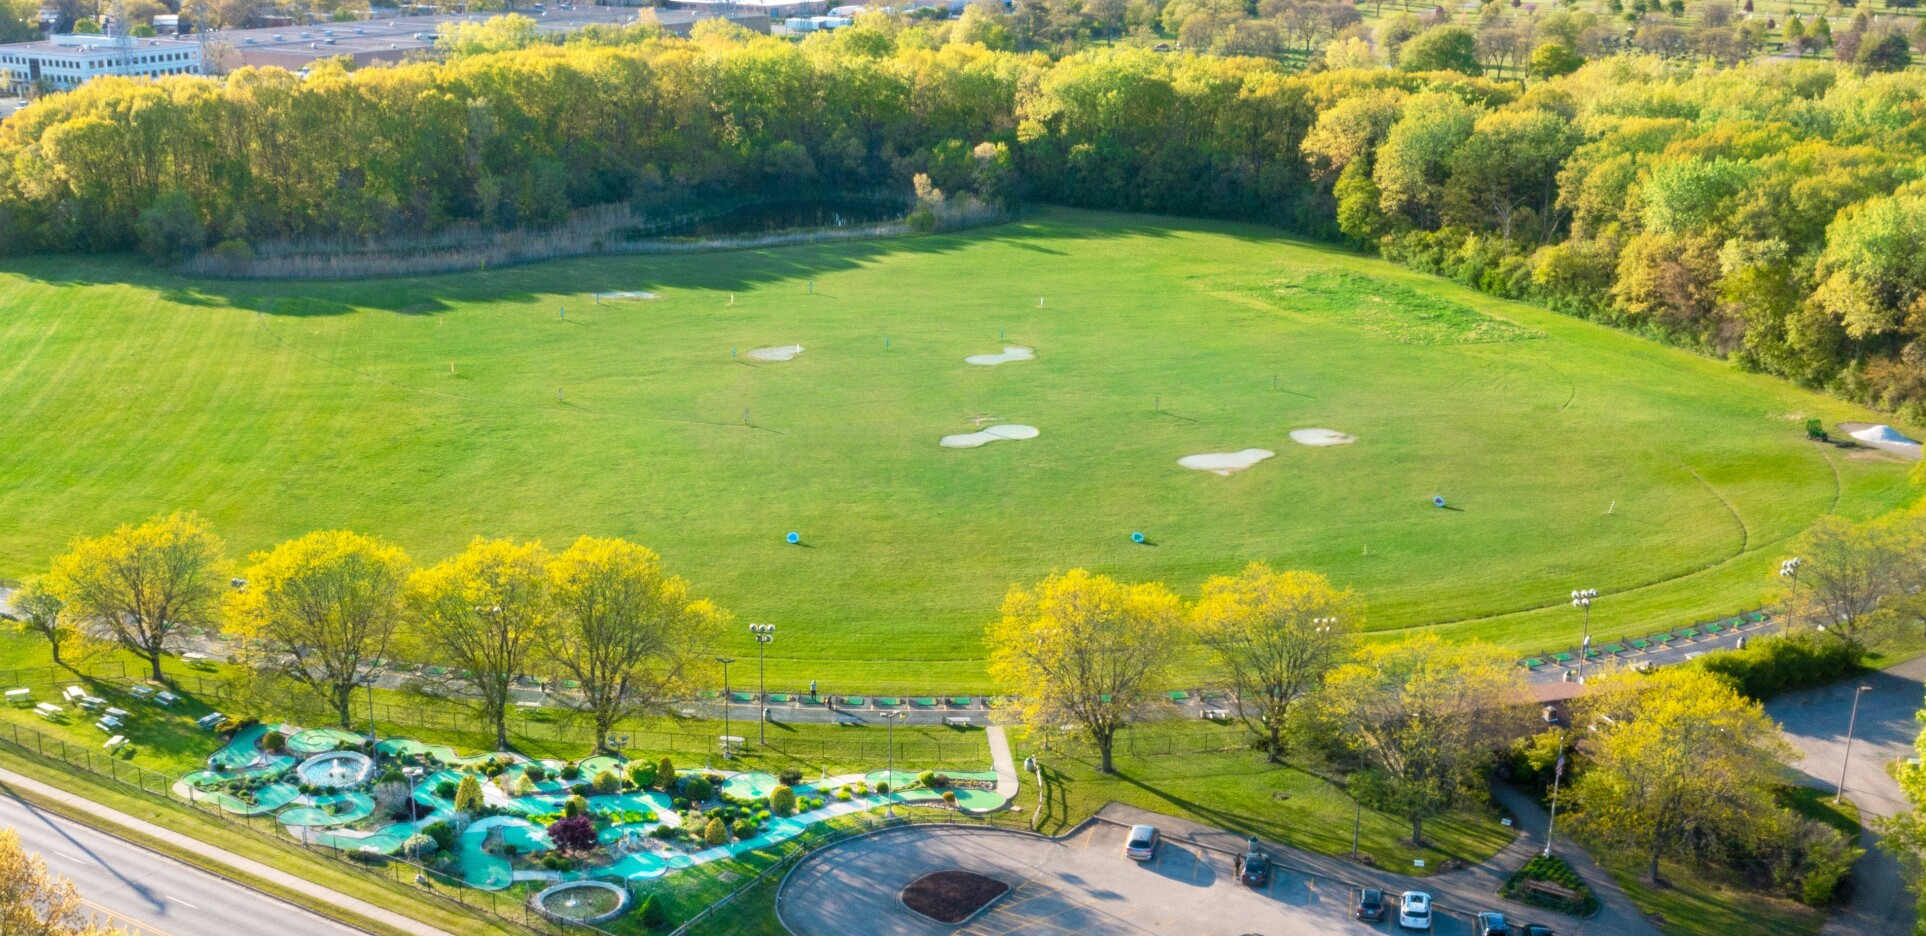 Harry Semrow Driving Range and Mini Golf Course Overhead Drone Photography